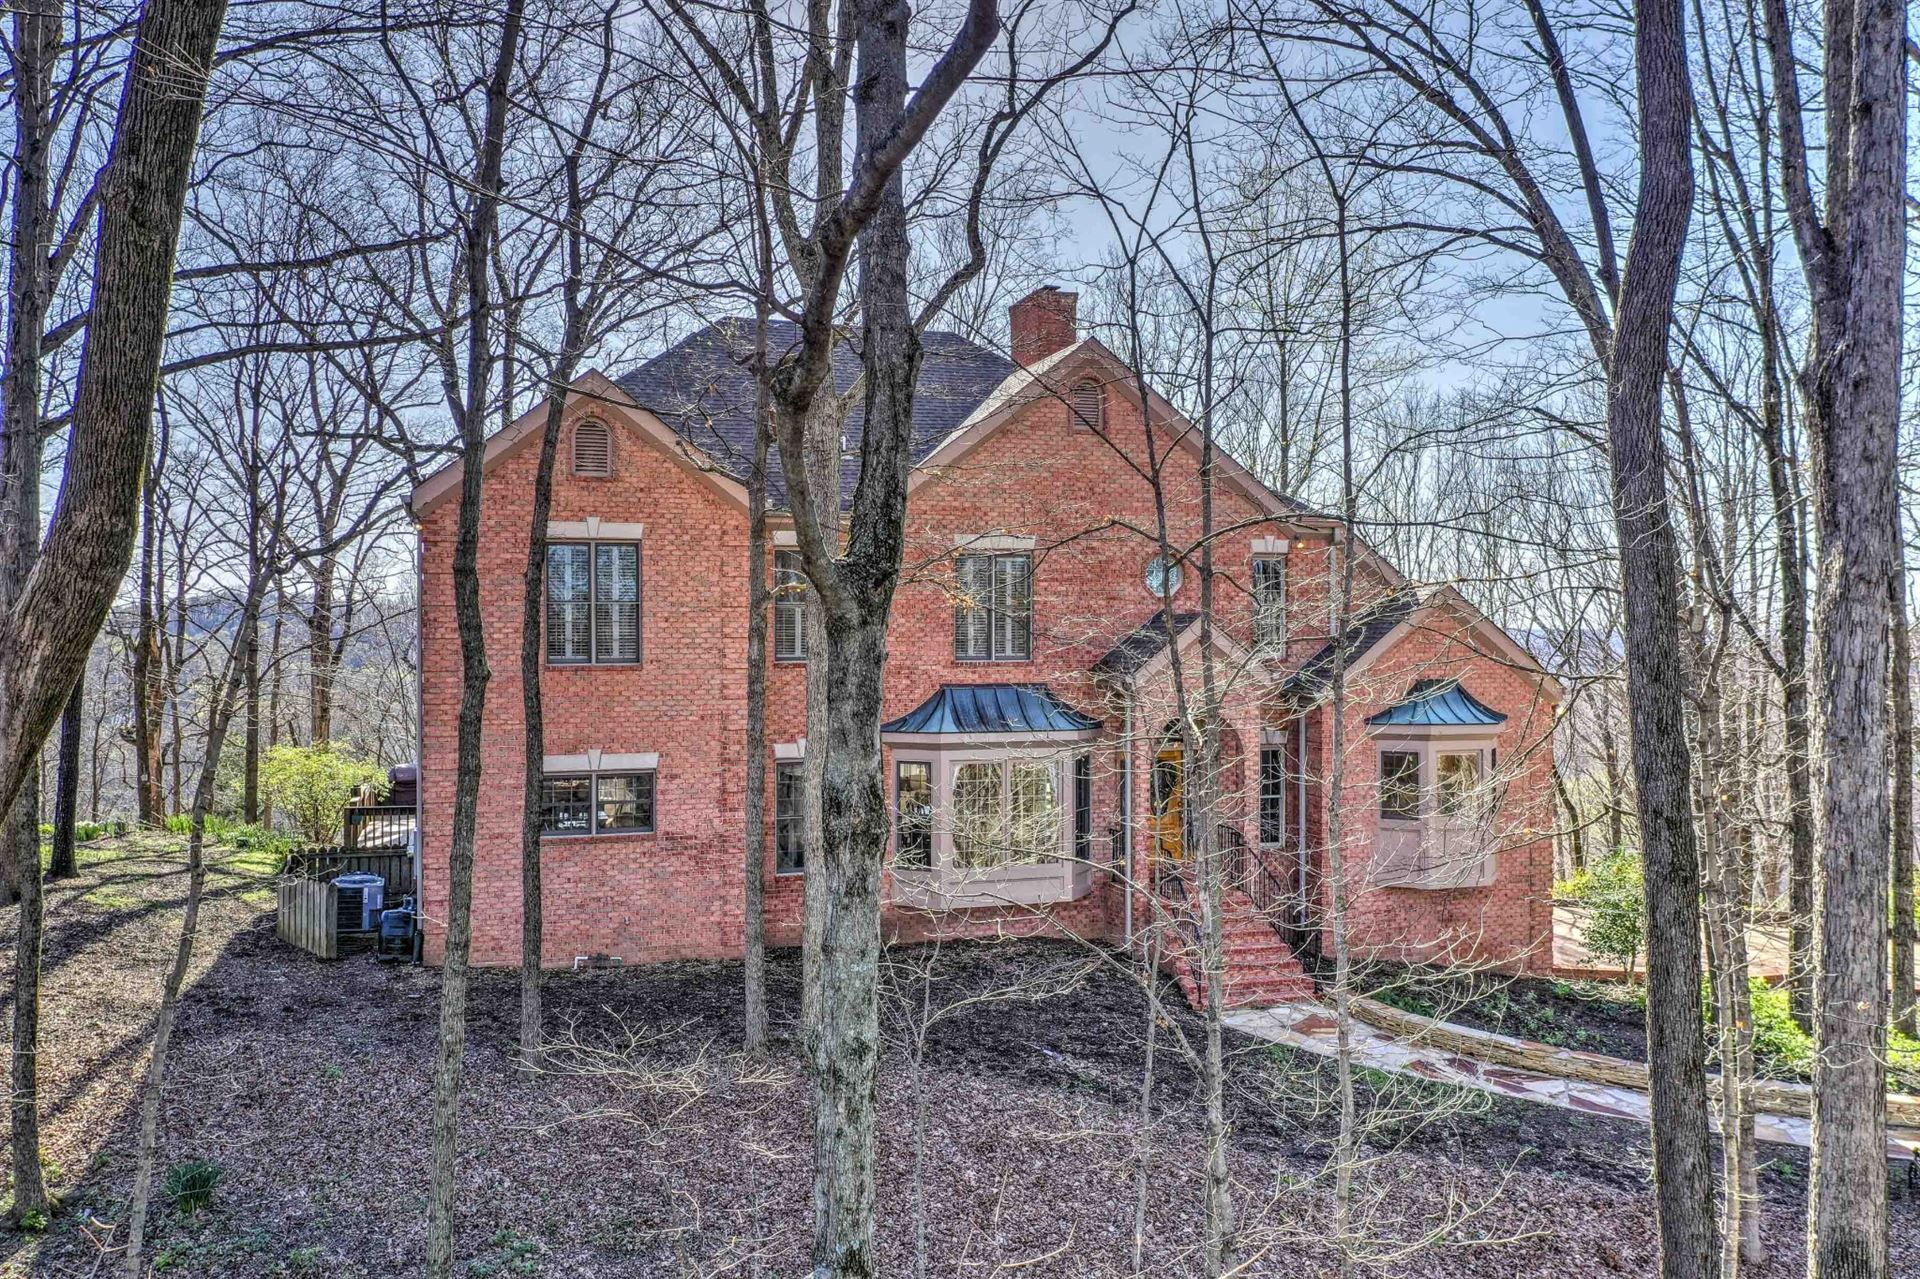 6528 Hidden Hollow Trl, Brentwood, TN 37027 - MLS#: 2239320